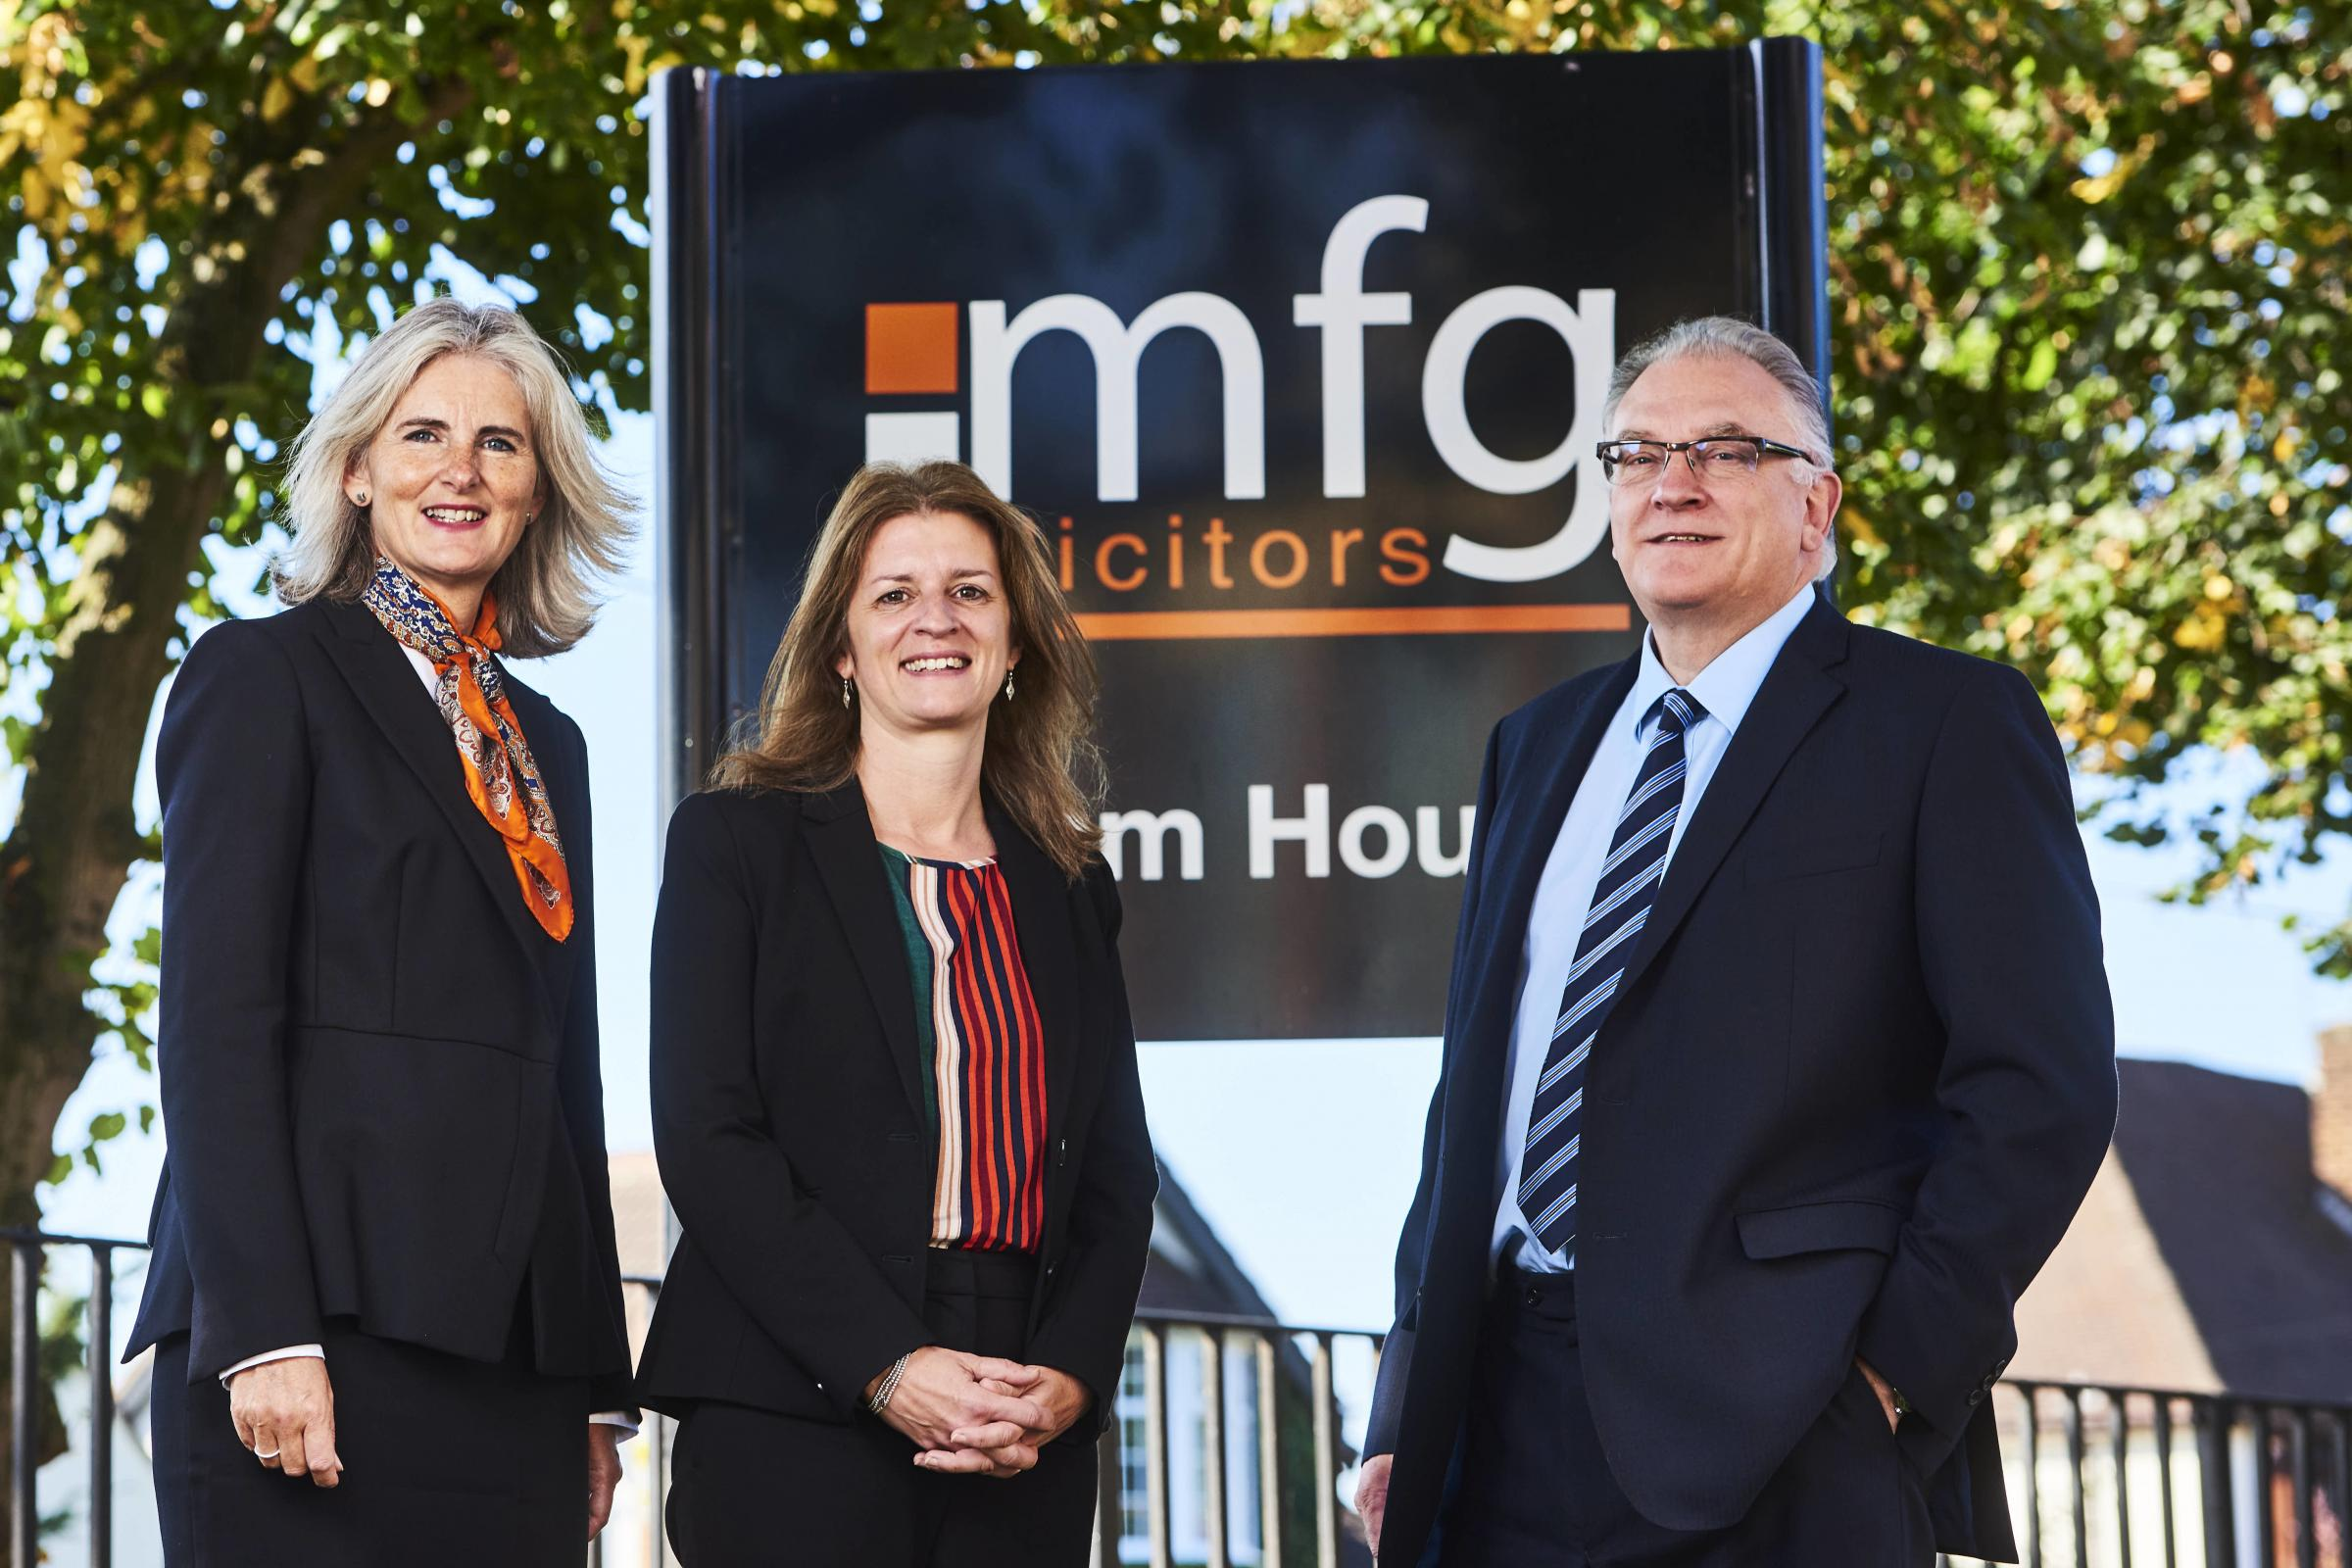 County law firm continues expanding with new senior appointments